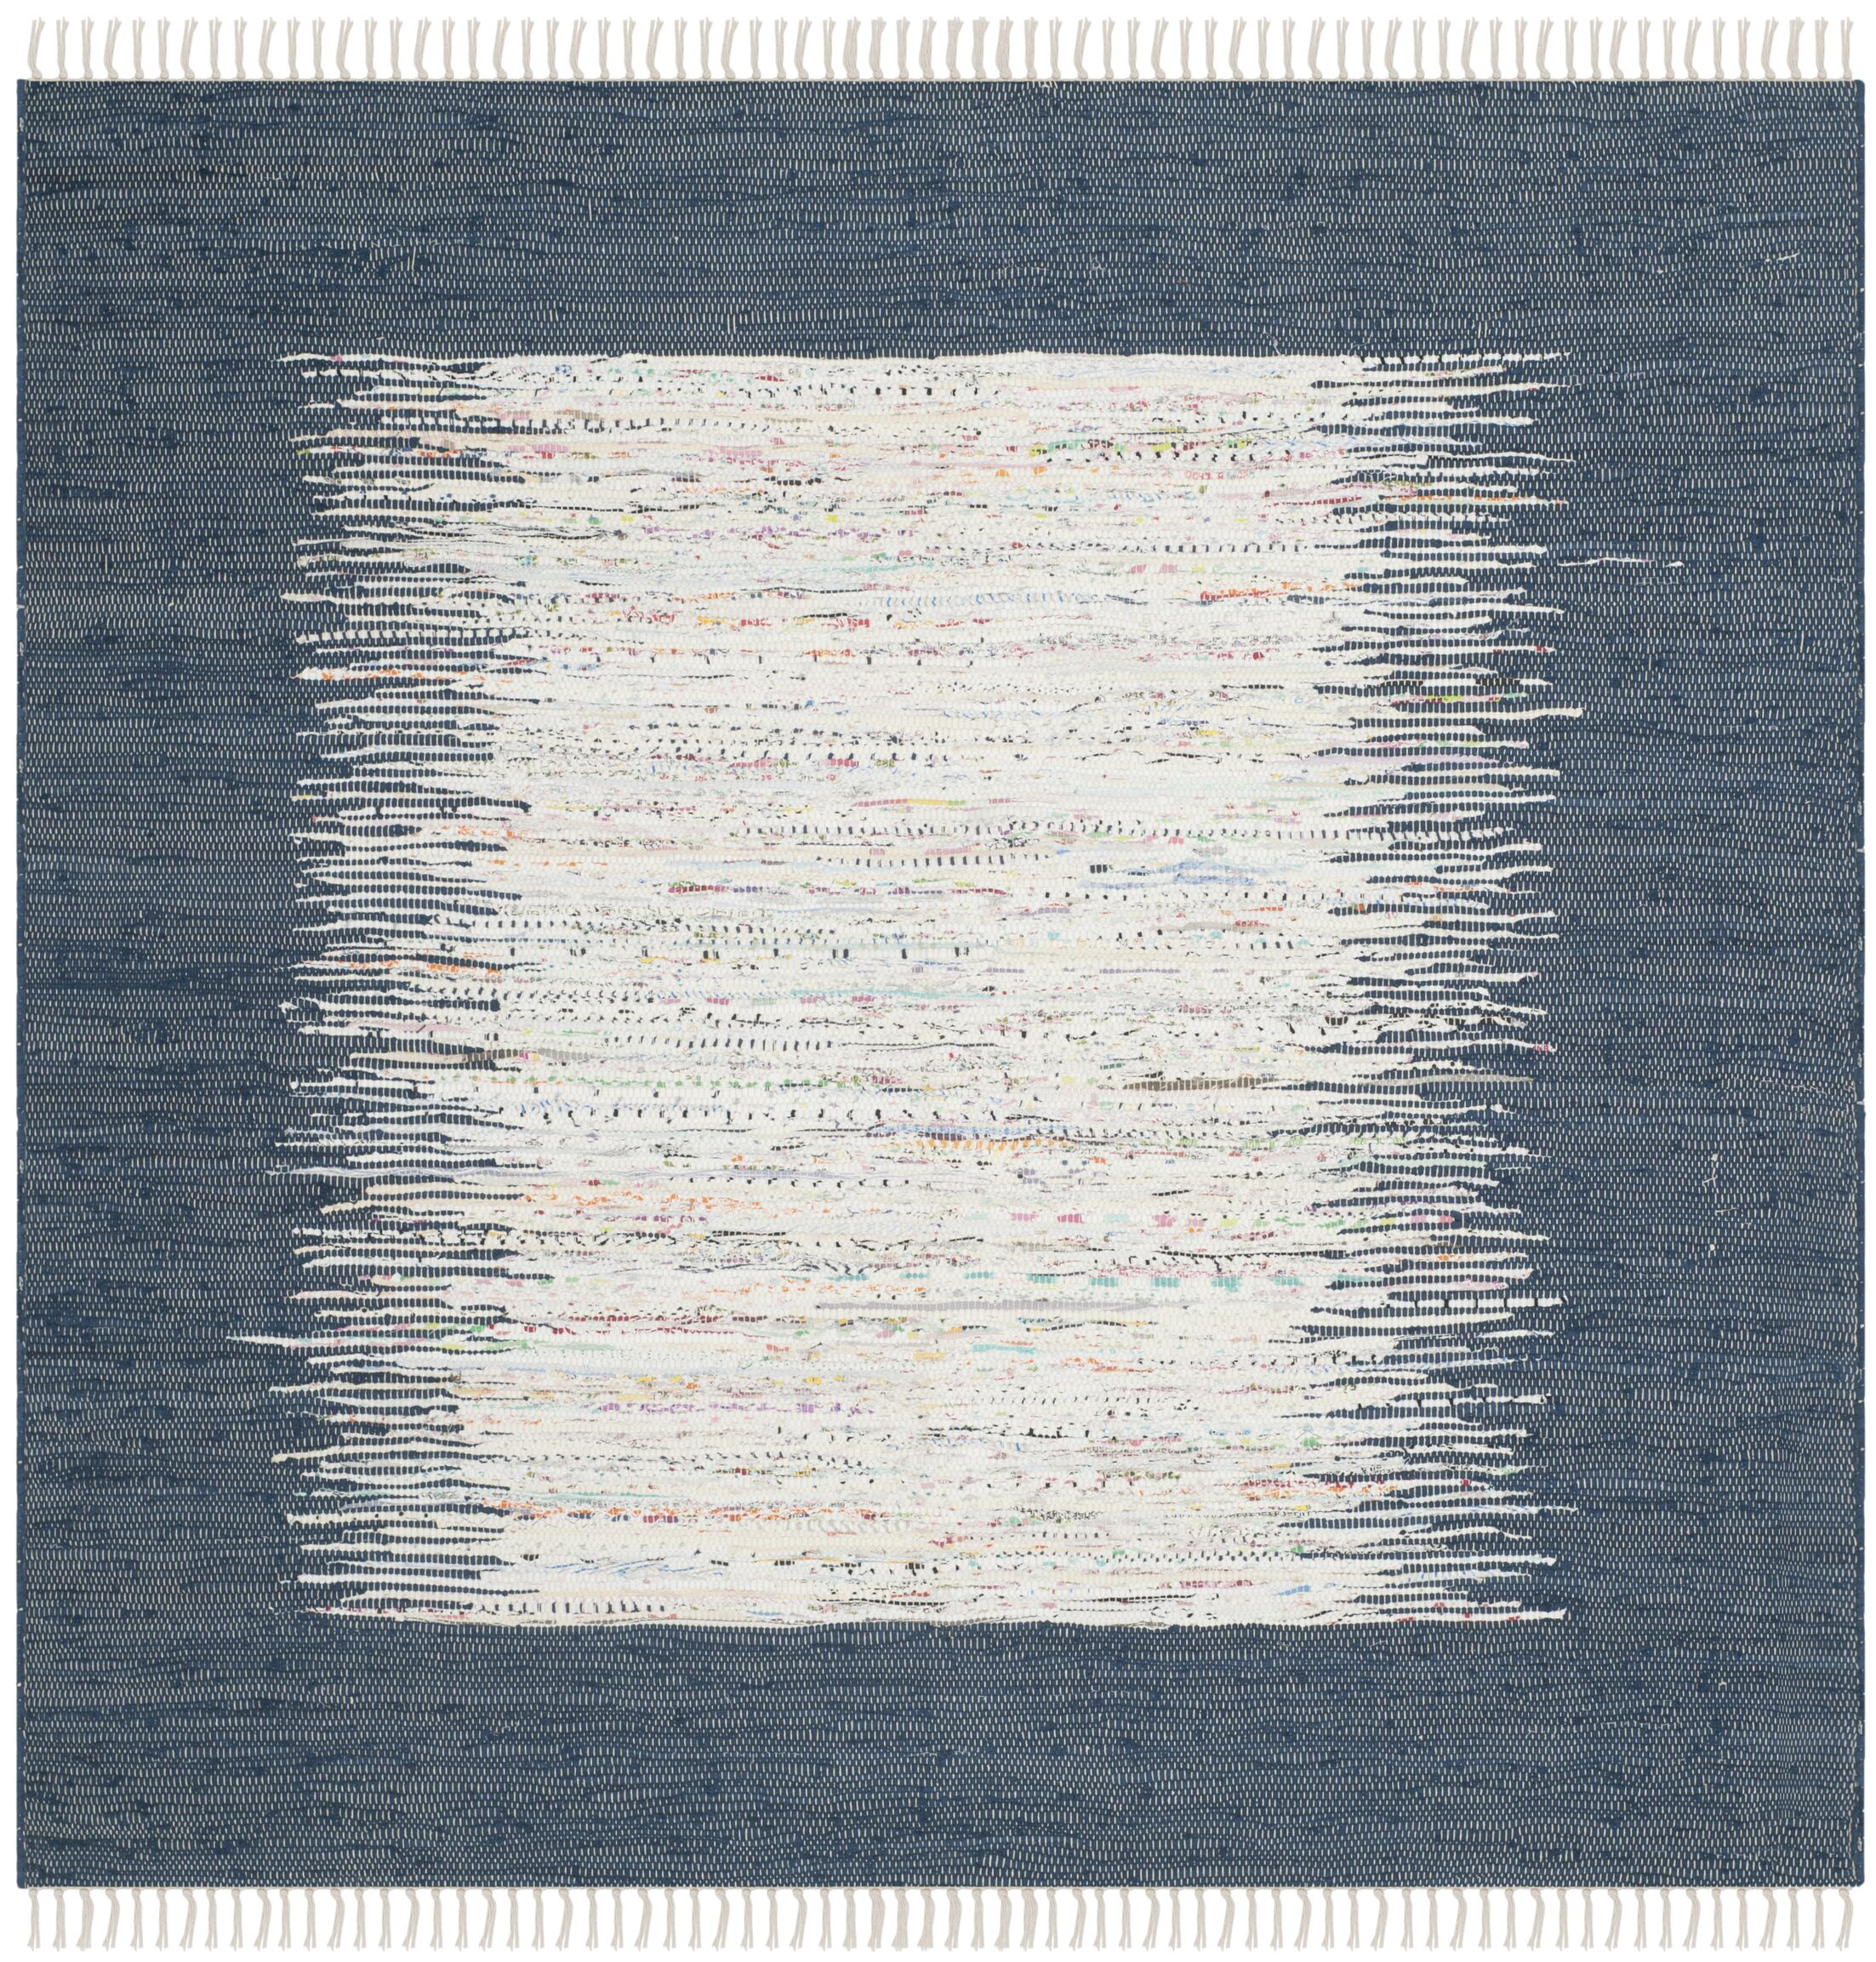 Evie Hand-Woven Cotton White/Navy Area Rug Rug Size: Square 6'